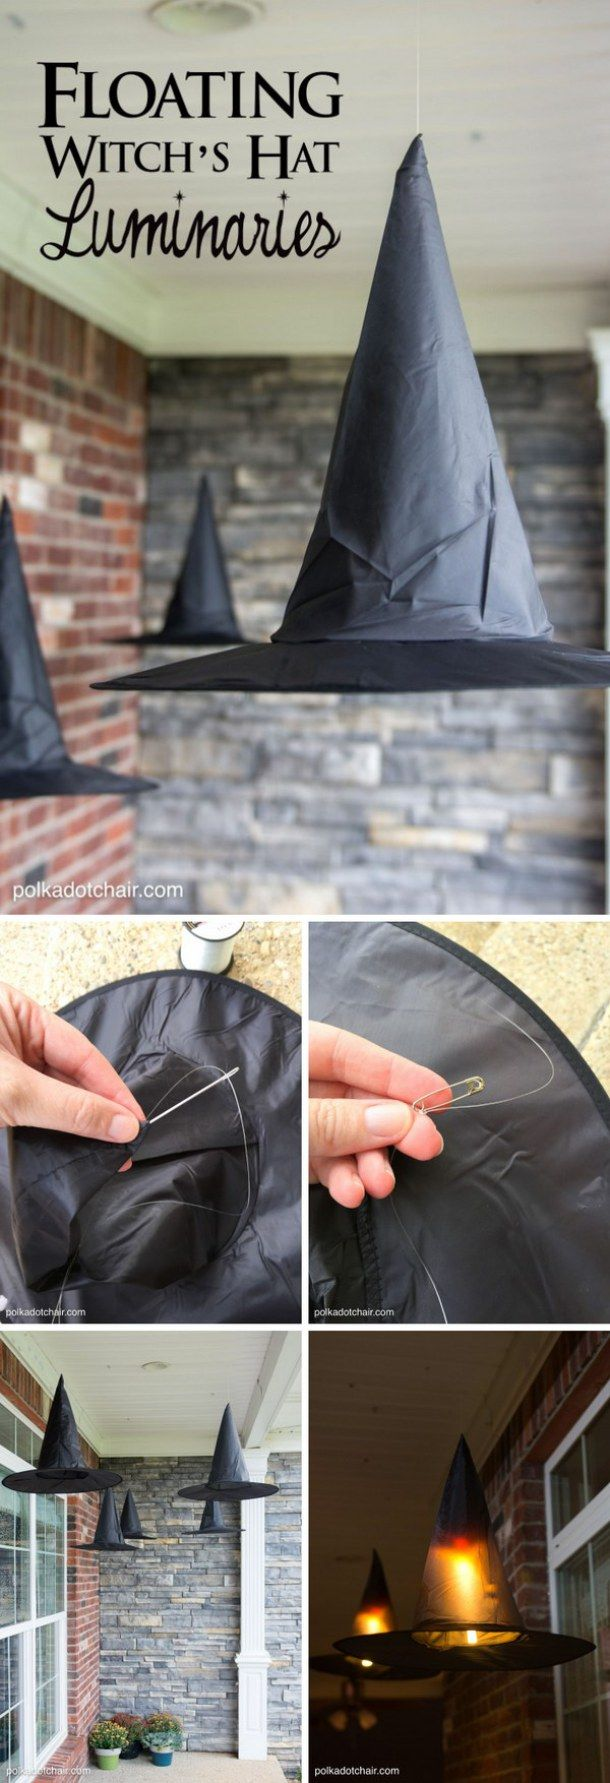 DIY Floating Witch Hat Luminaries Halloween Porch Decorations Tutorial | The Polka Dot Chair - Spooktacular Halloween DIYs, Crafts and Projects - The BEST Do it Yourself Halloween Decorations